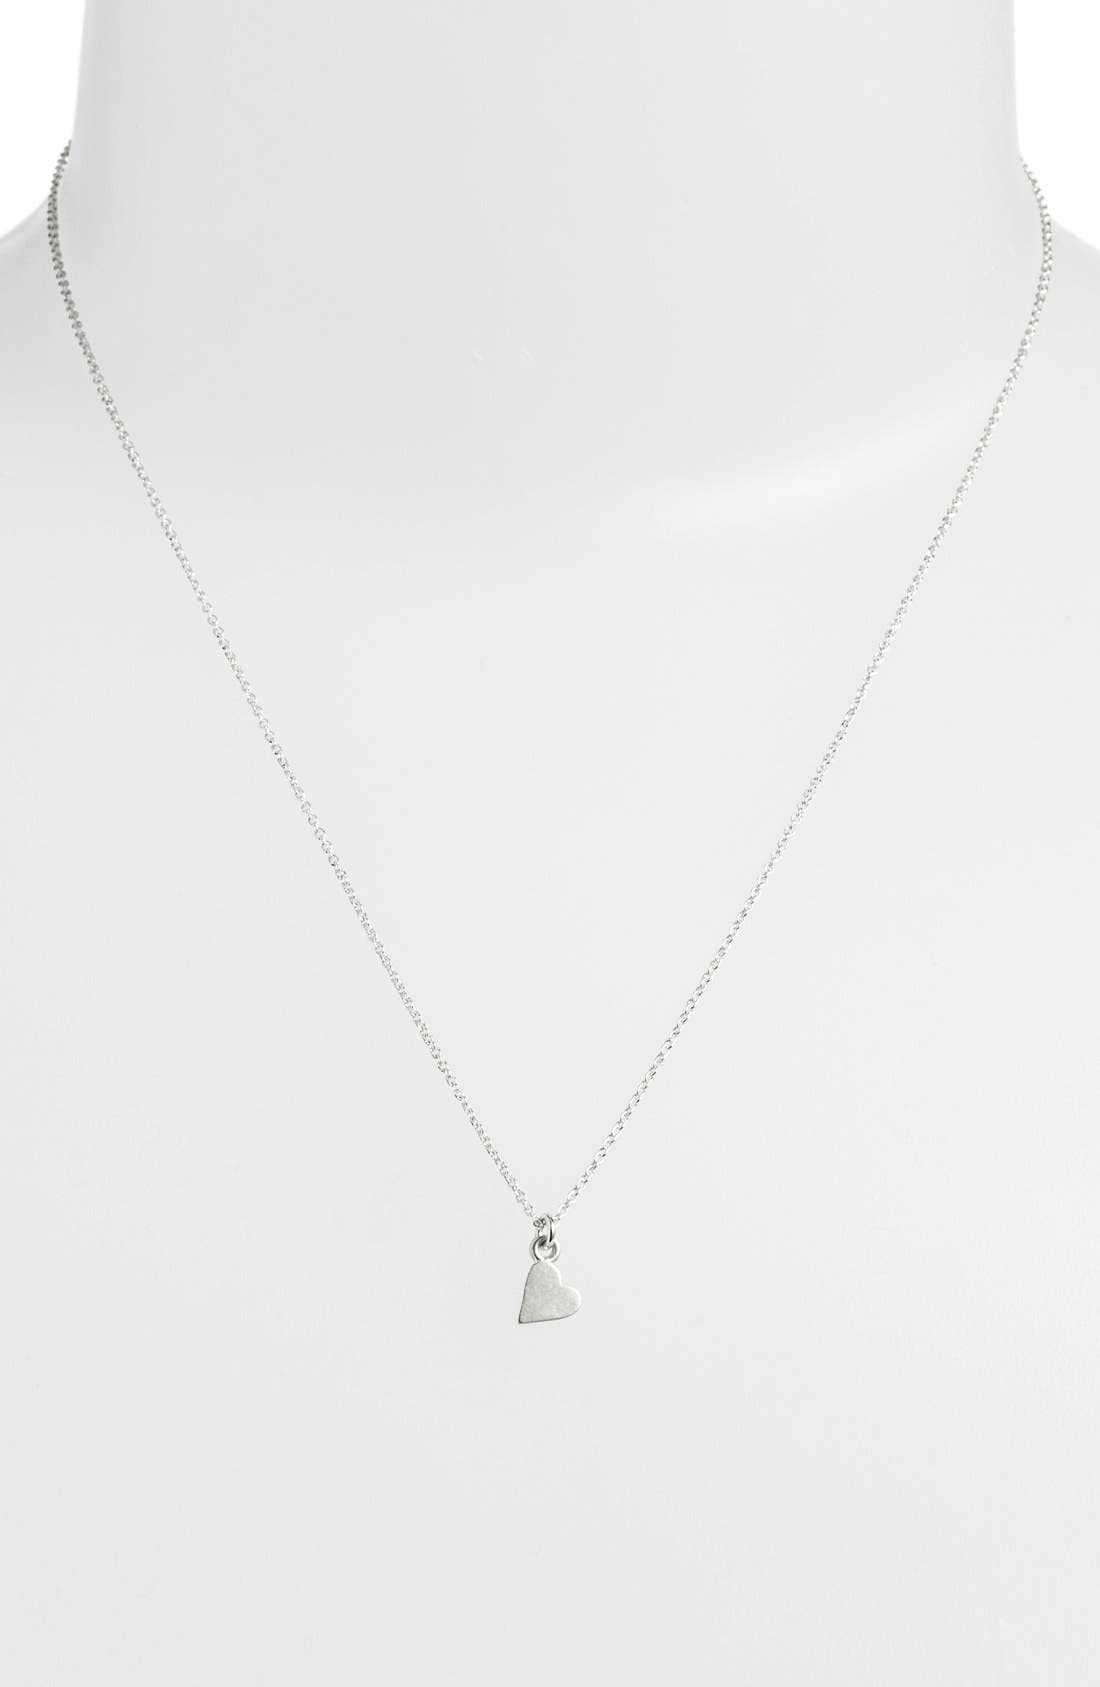 'Mom' Pendant Necklace,                             Alternate thumbnail 3, color,                             040